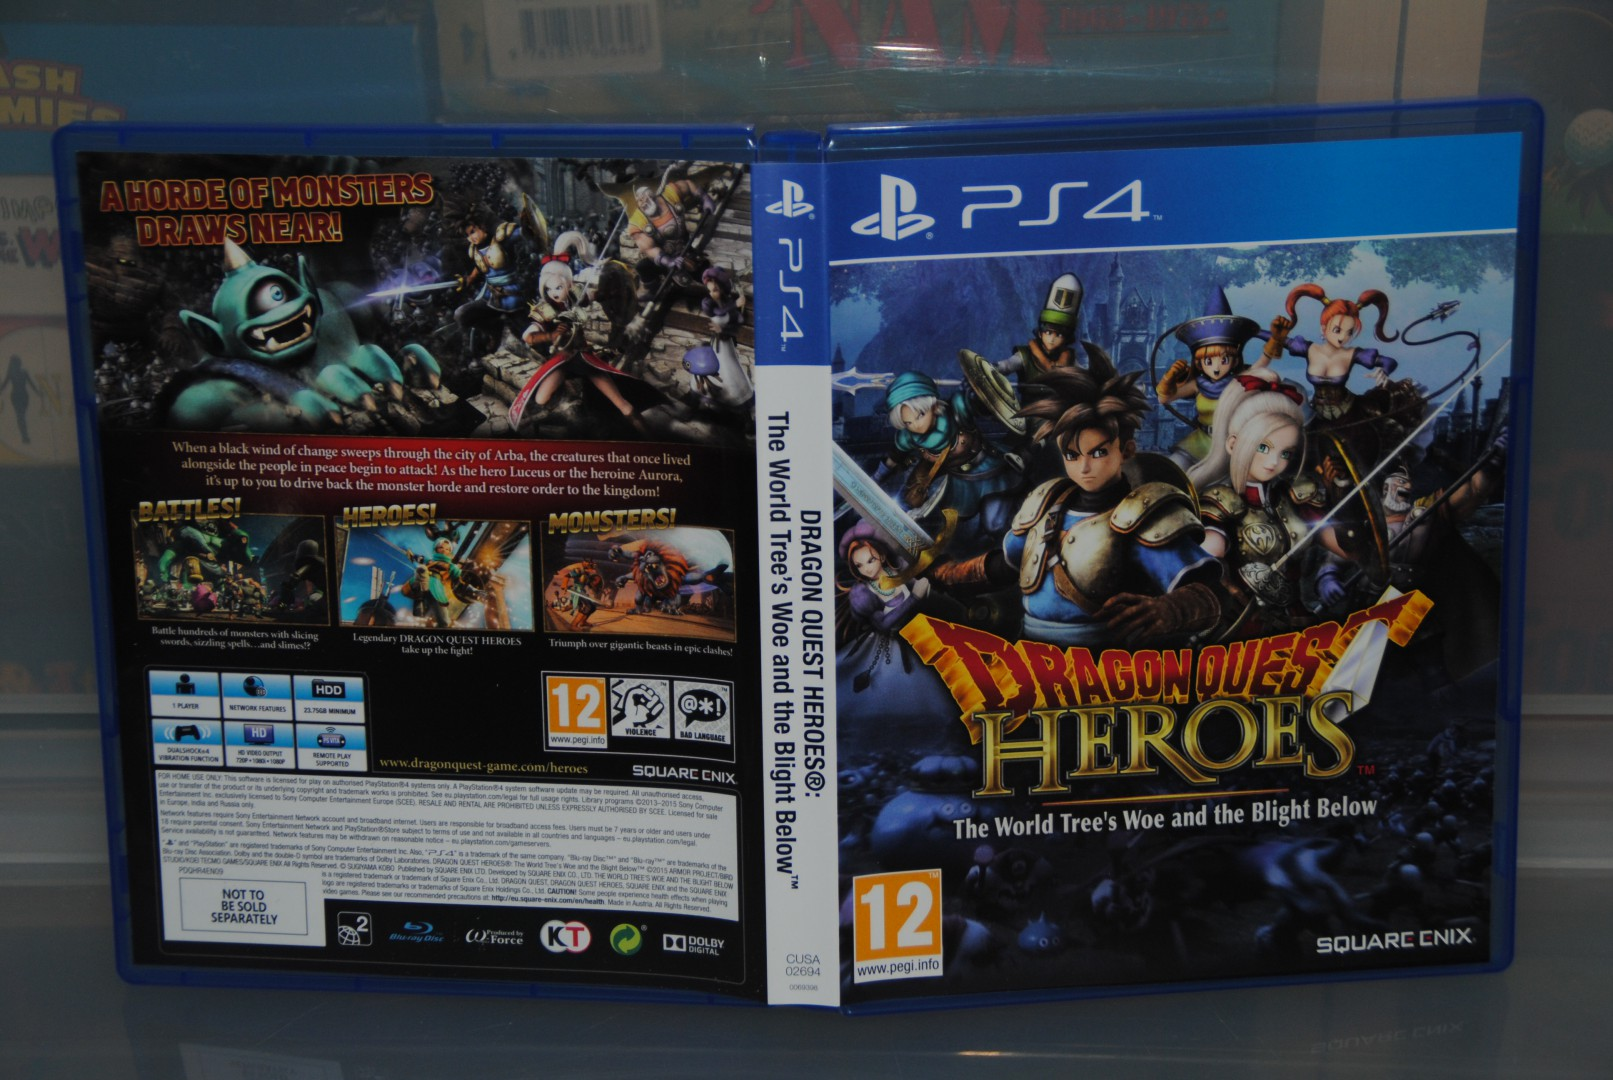 Dragon Quest Heroes, No steelbook?? WTF